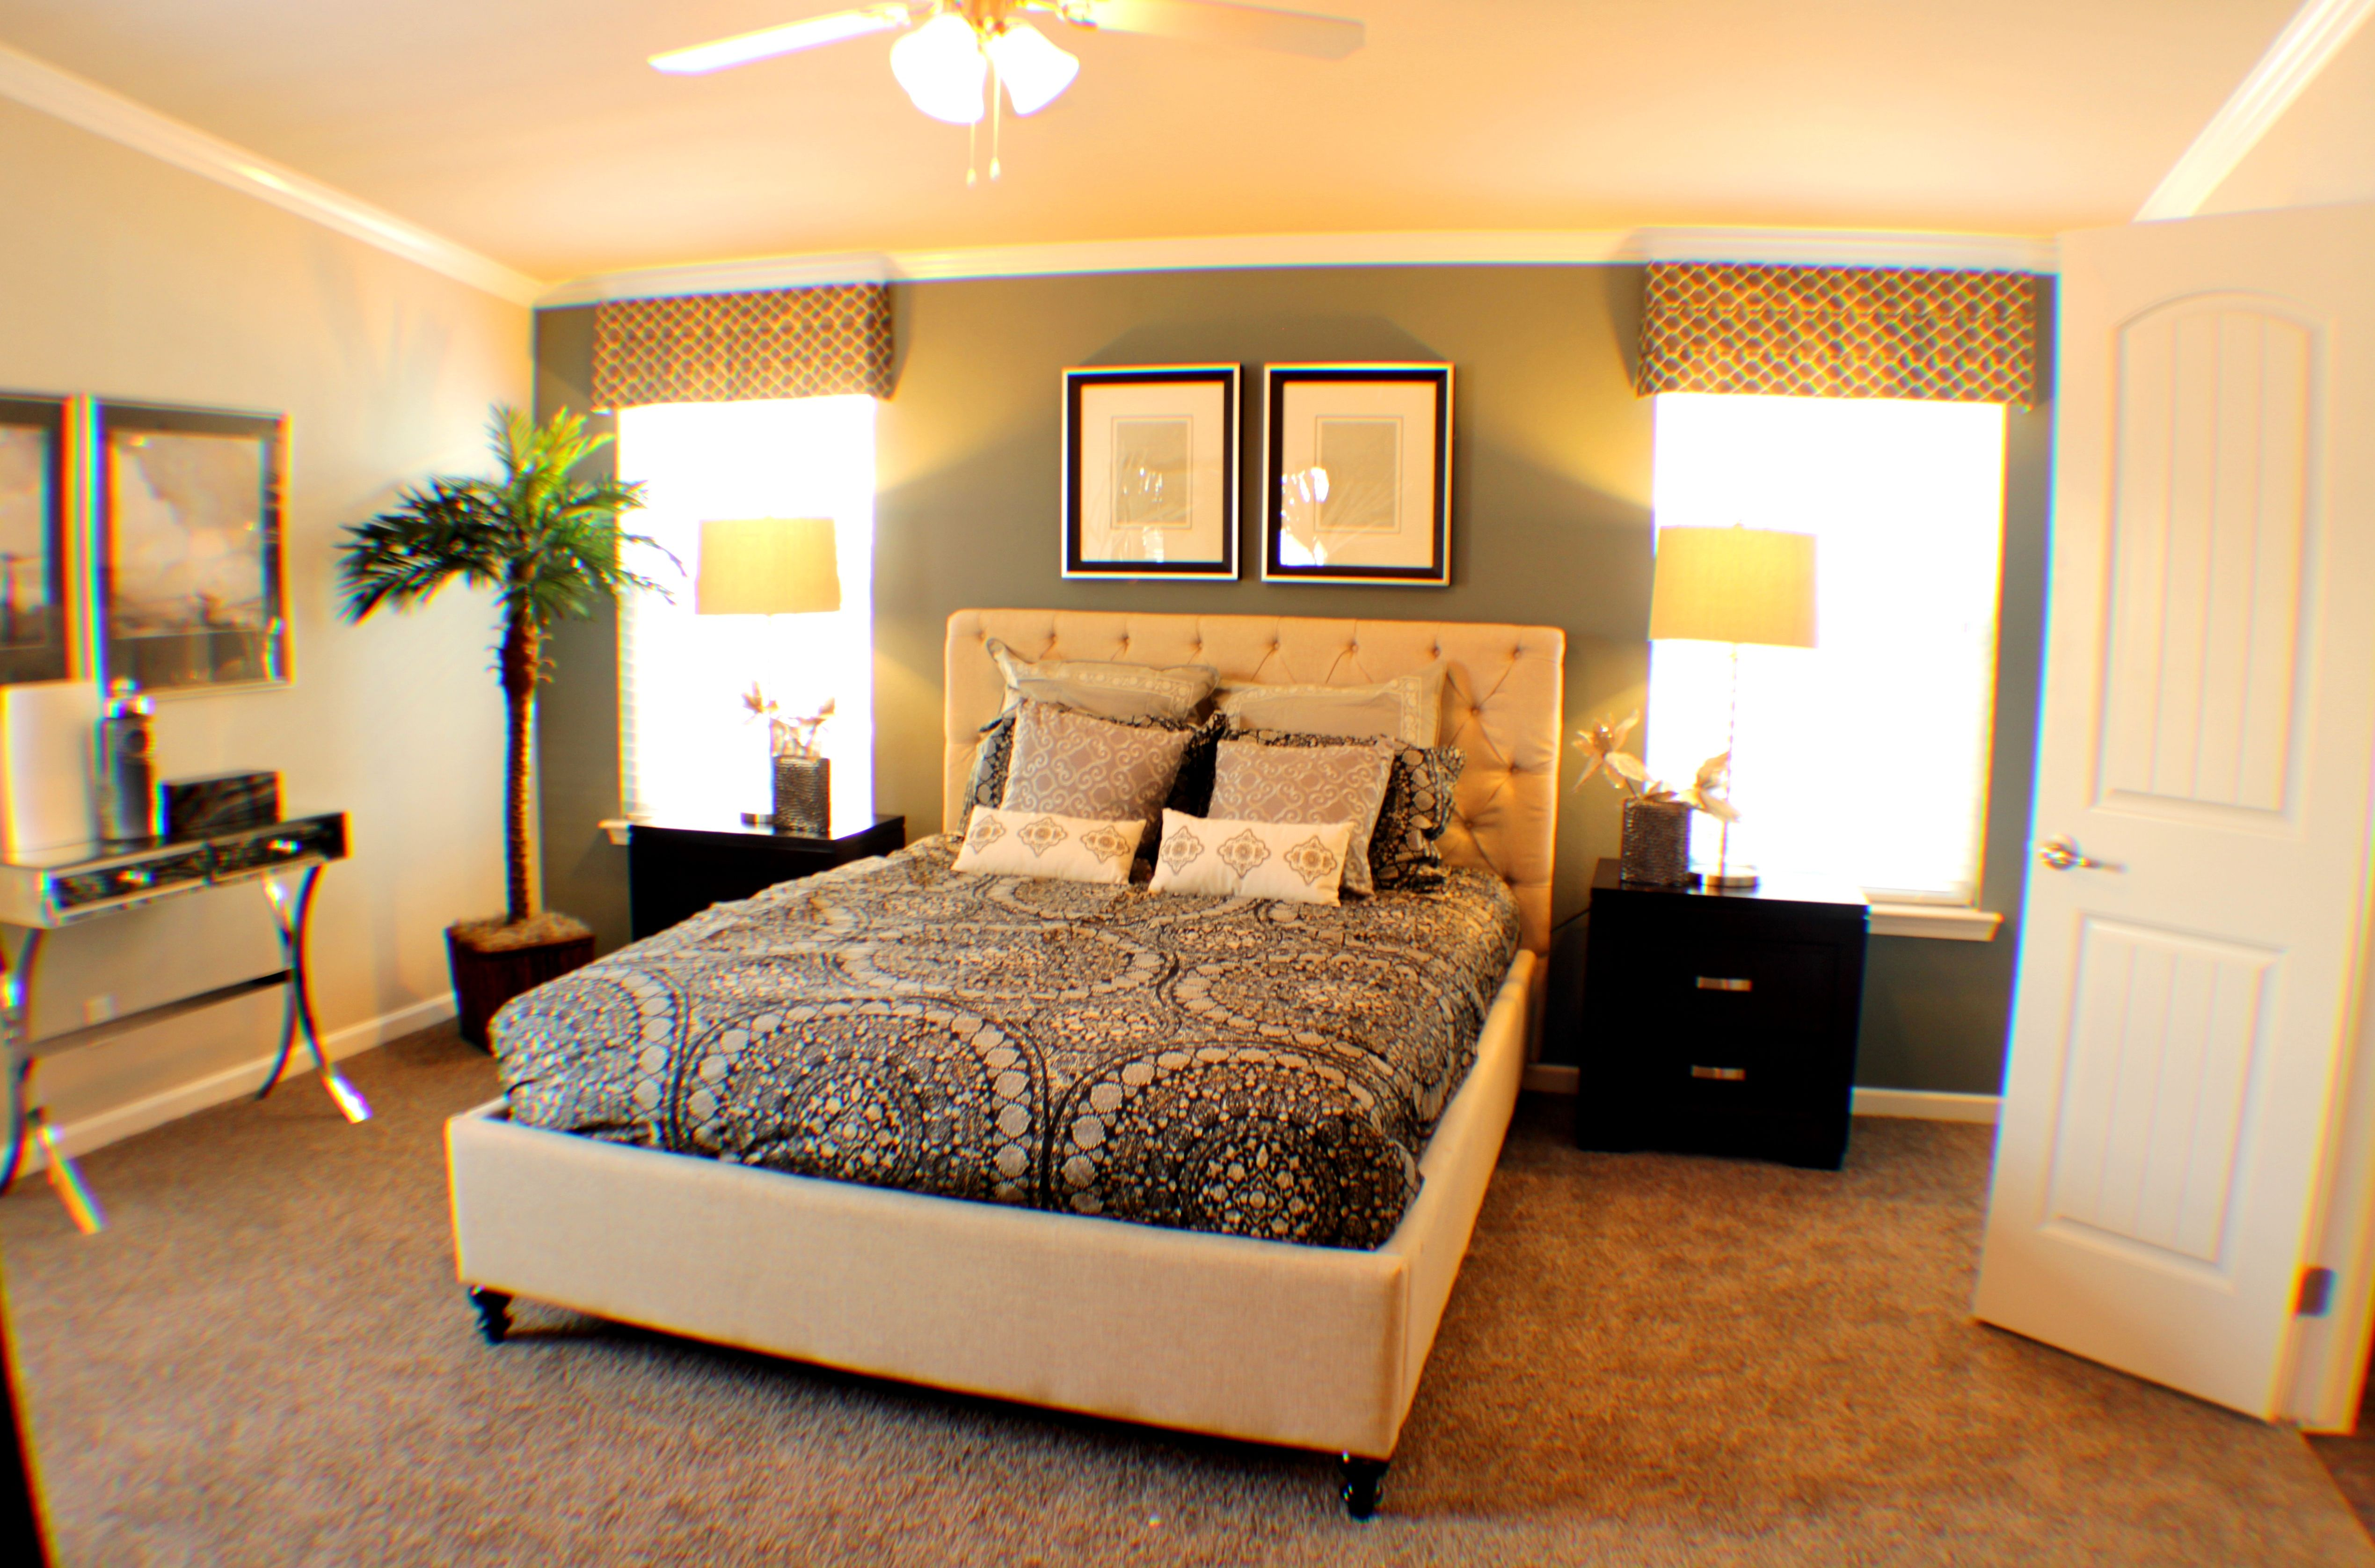 Master Bedrooms, Quality Low Priced Modular Homes & Mobile